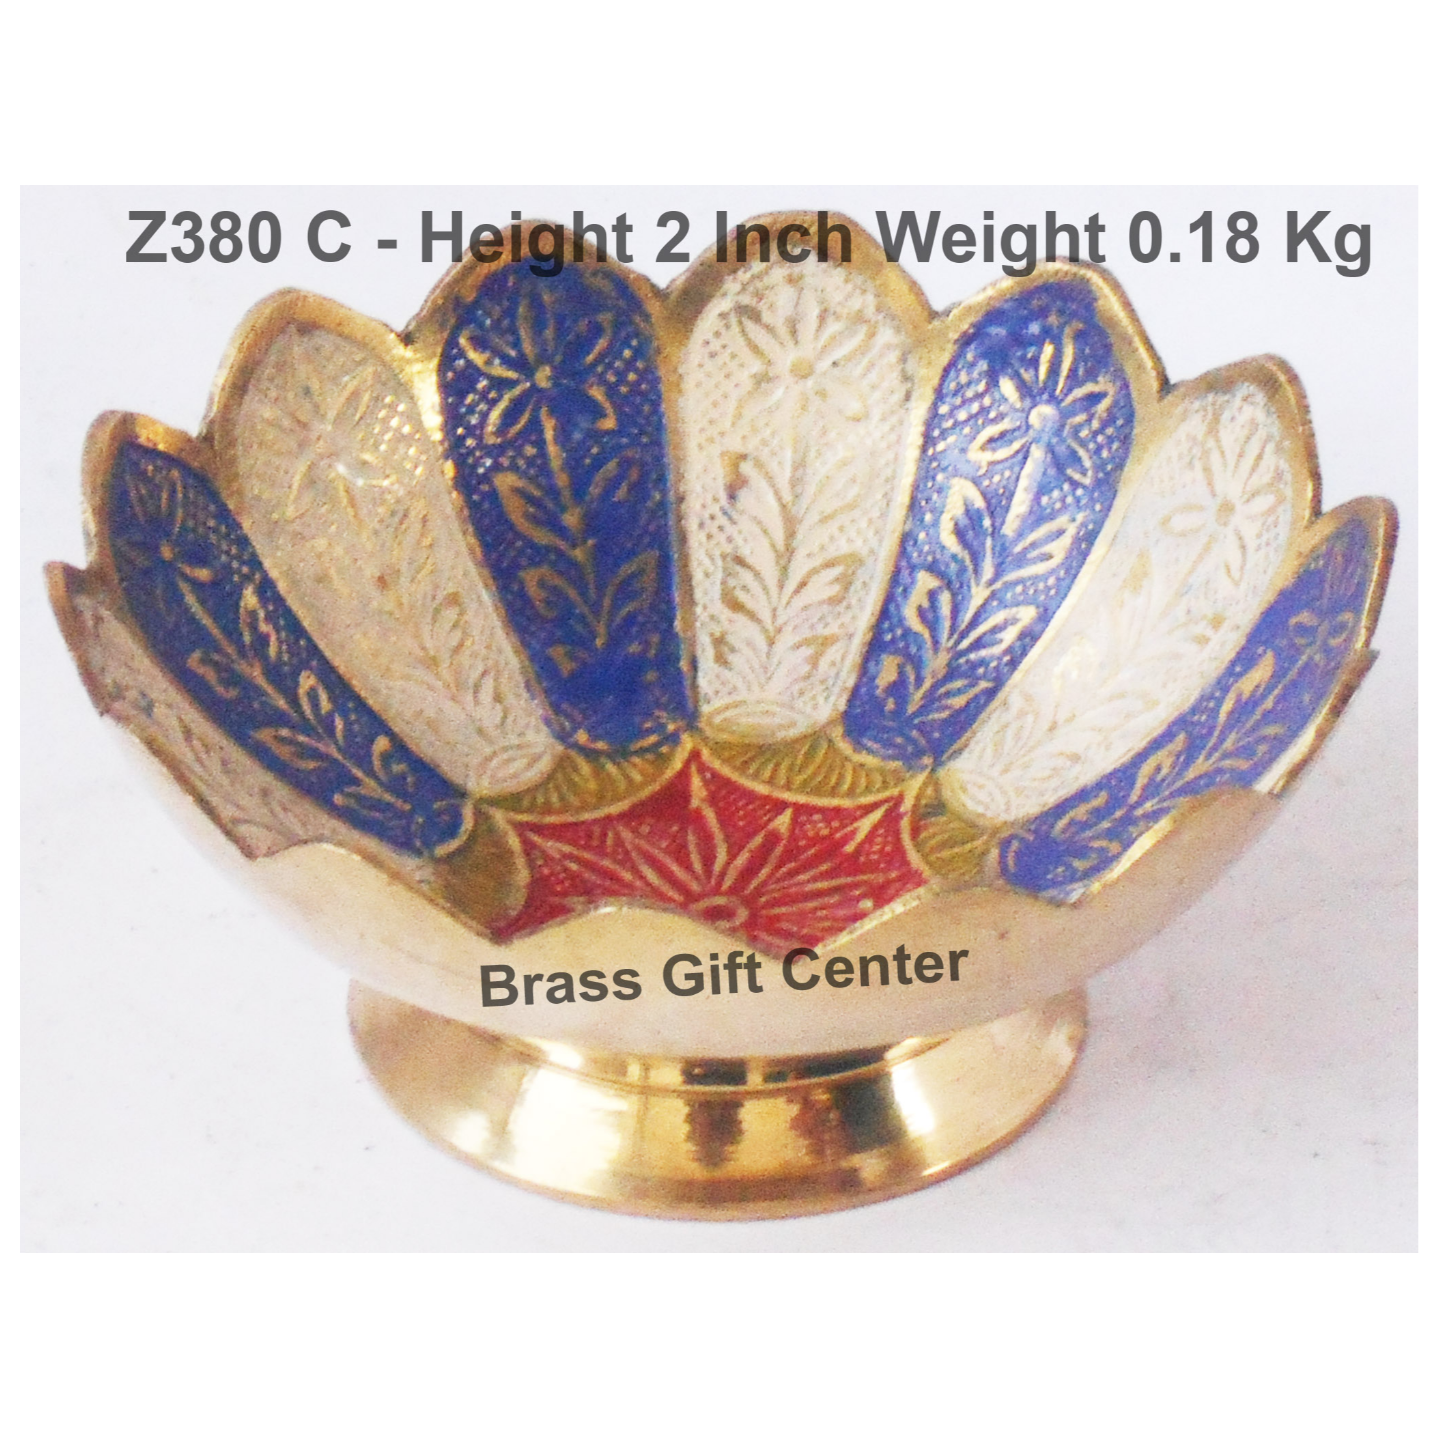 Brass Lotus kamal Shape Bowl Multicolour - 4.5 Inch (Z380 C)